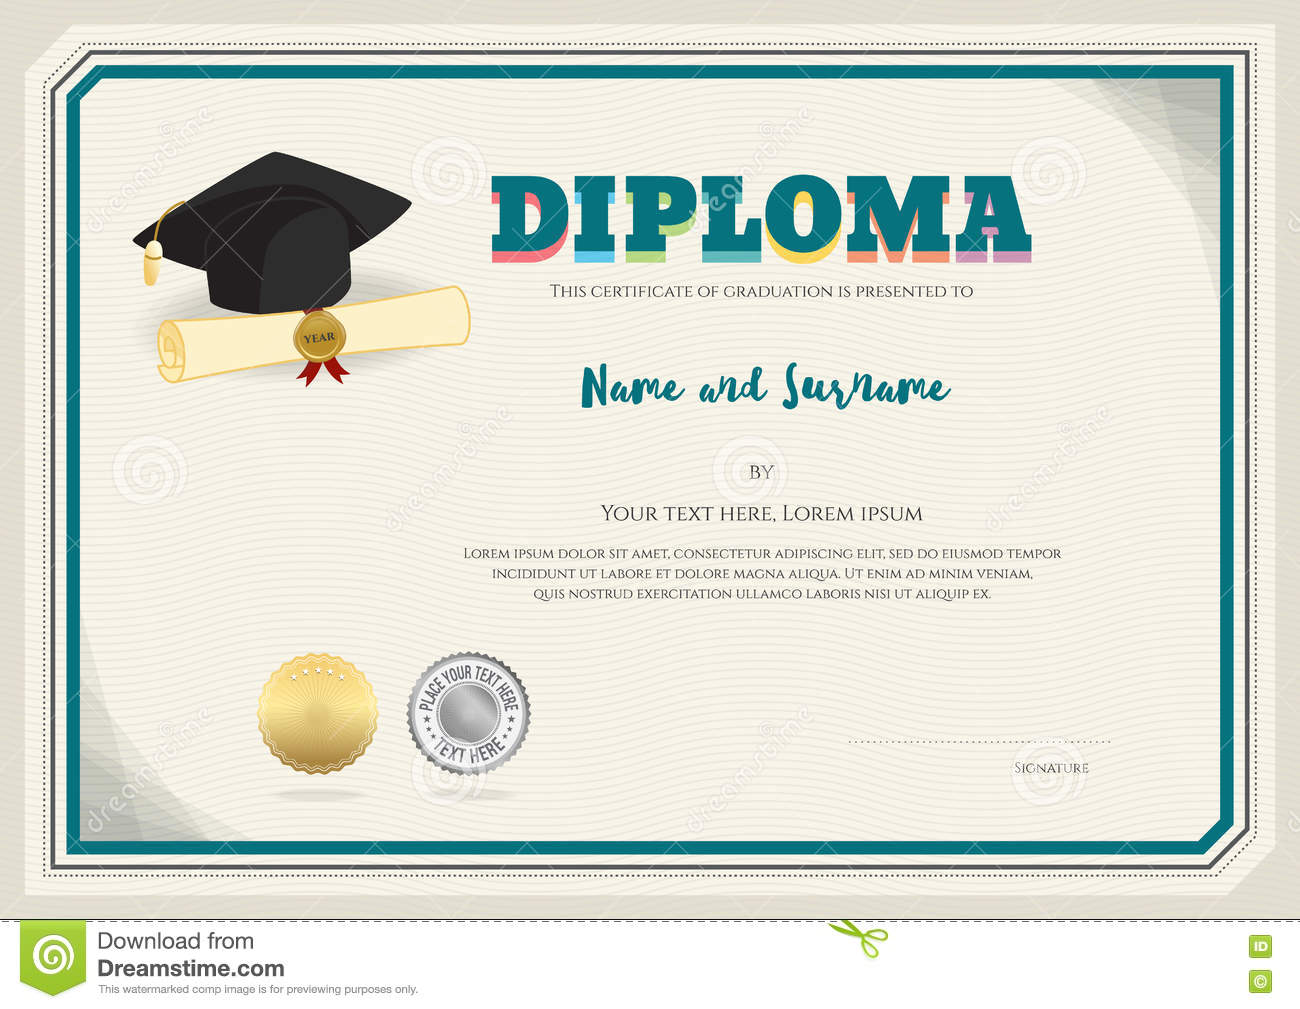 diploma certificate template in vector with graduation cap stock vector image 73724866. Black Bedroom Furniture Sets. Home Design Ideas